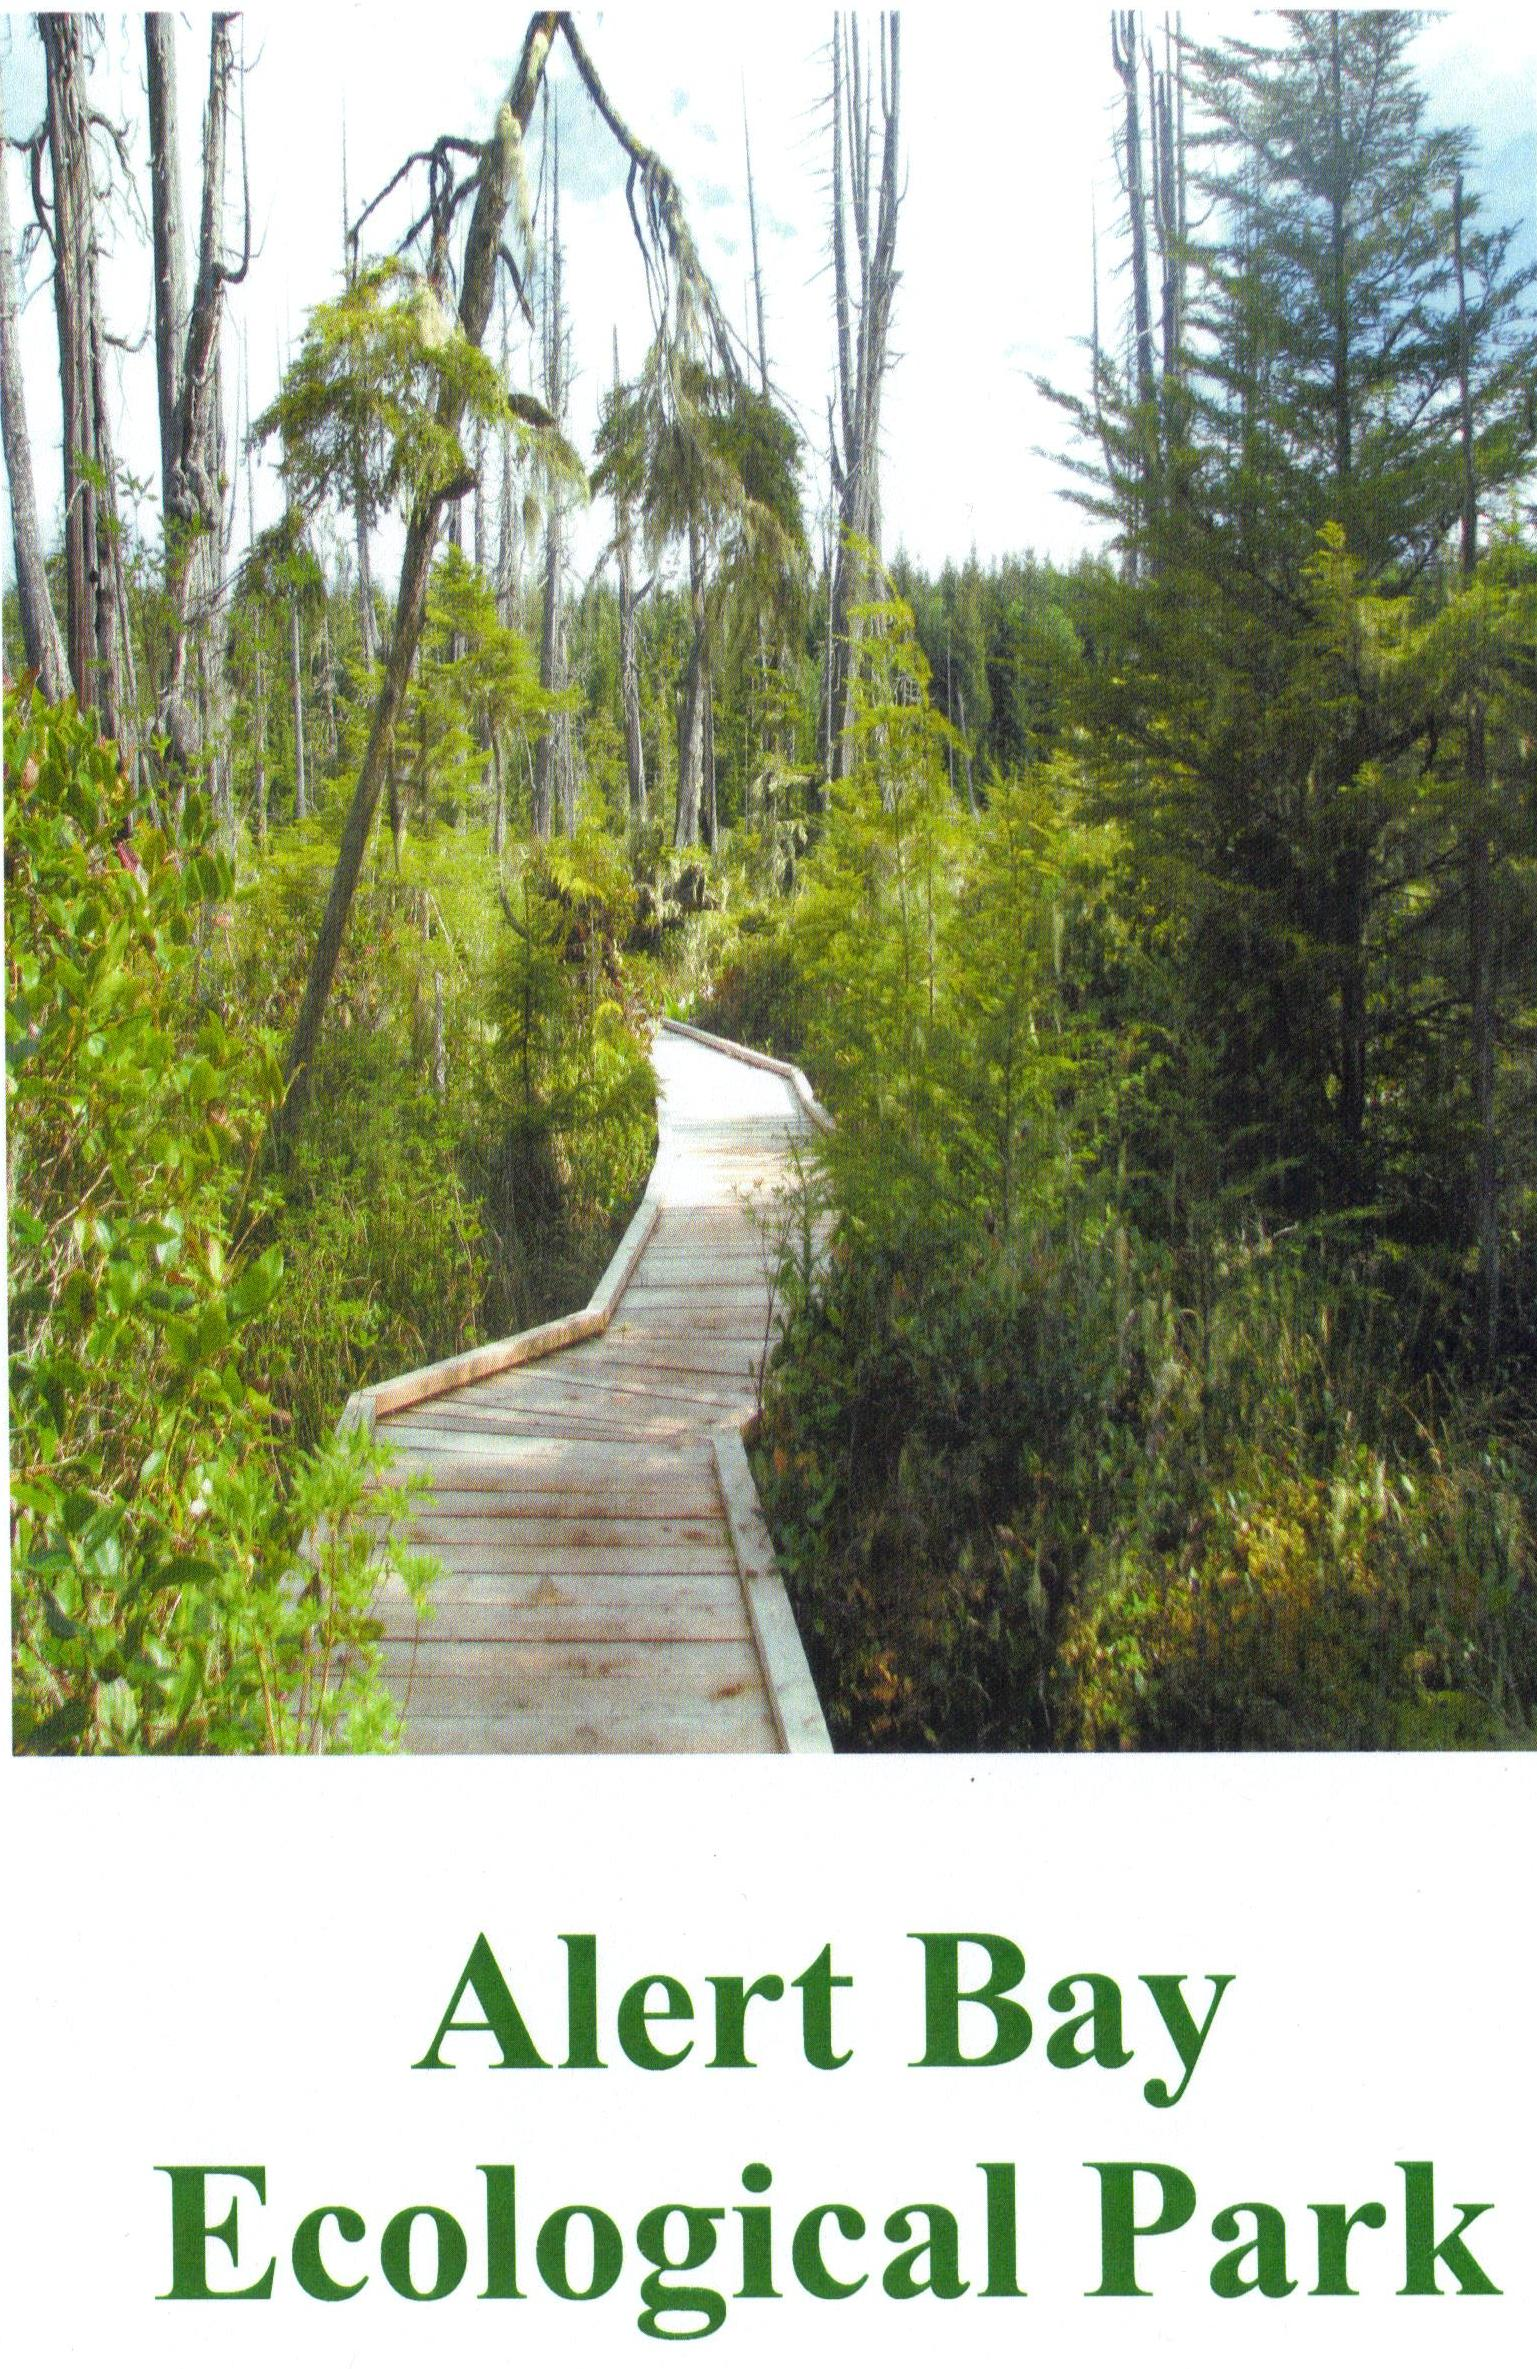 Ecological Park Front Cover.jpg